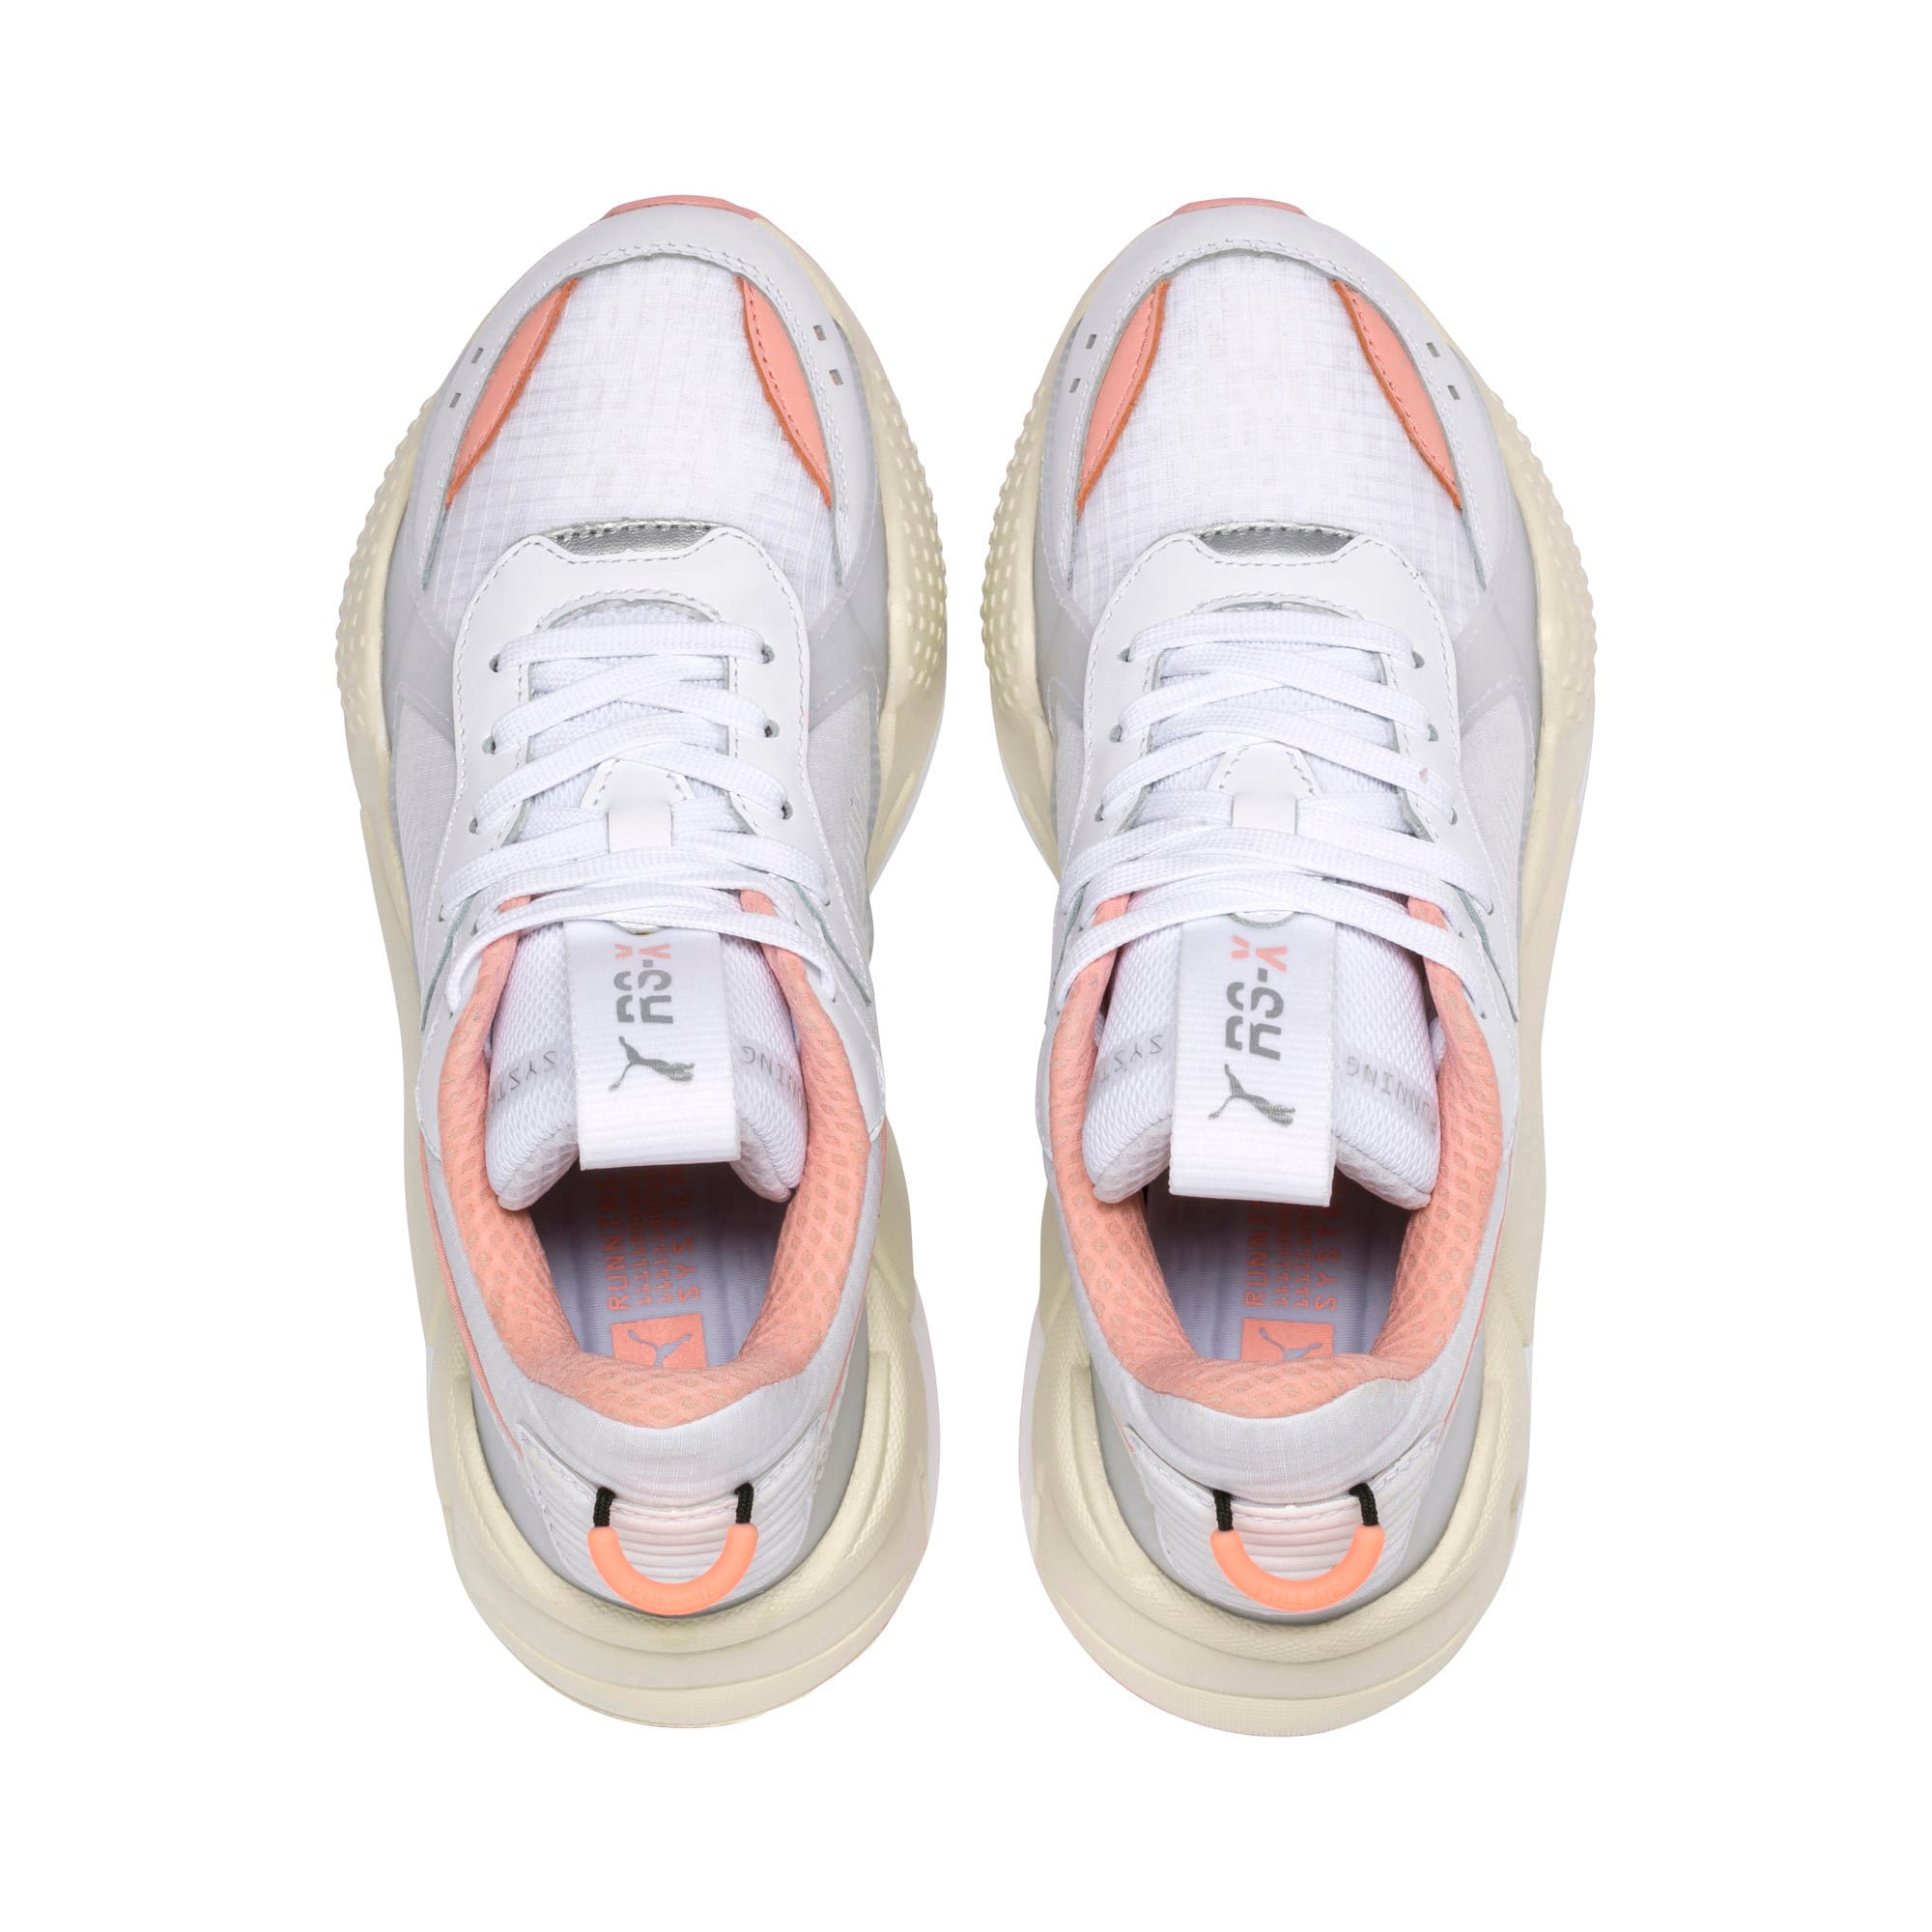 Thumbnail 7 of RS-X TECH Sneakers, Puma White-Peach Bud, medium